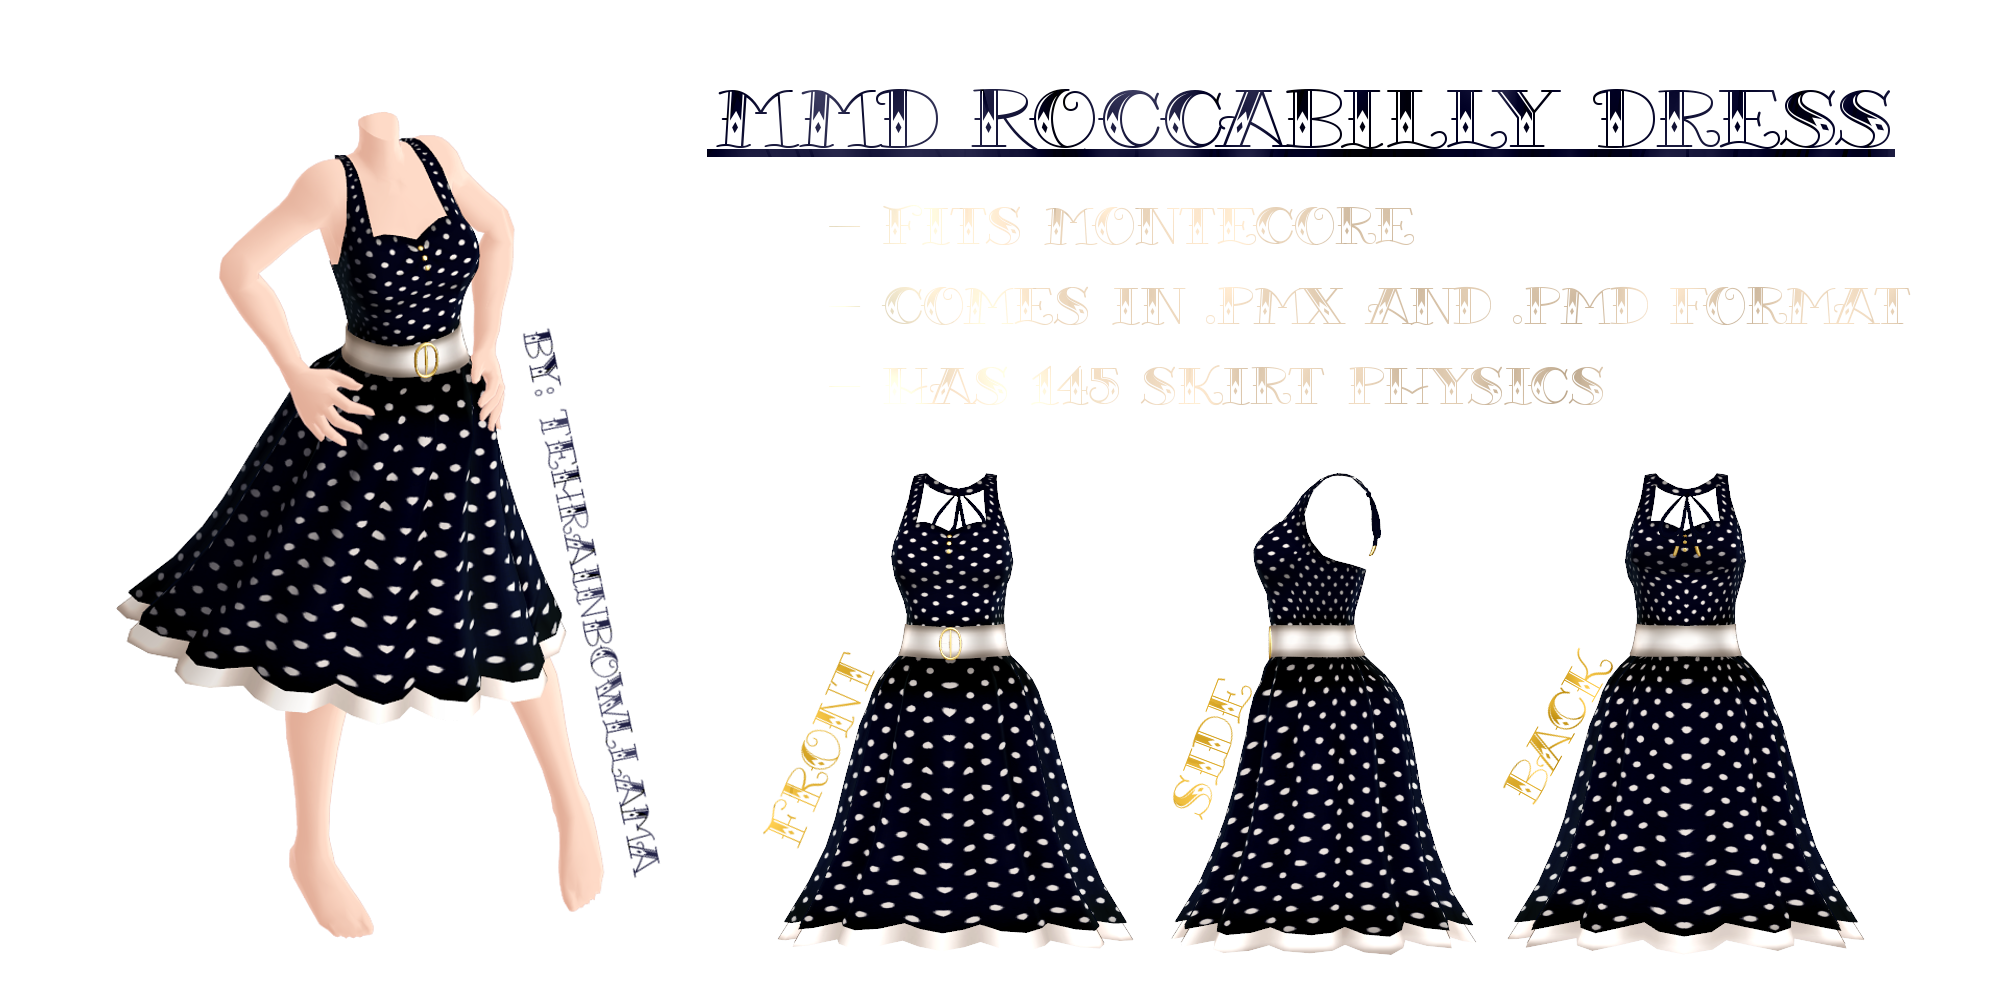 Mmd 2015 New Year Dress By Tehrainbowllama Deviantart Dibujos Para